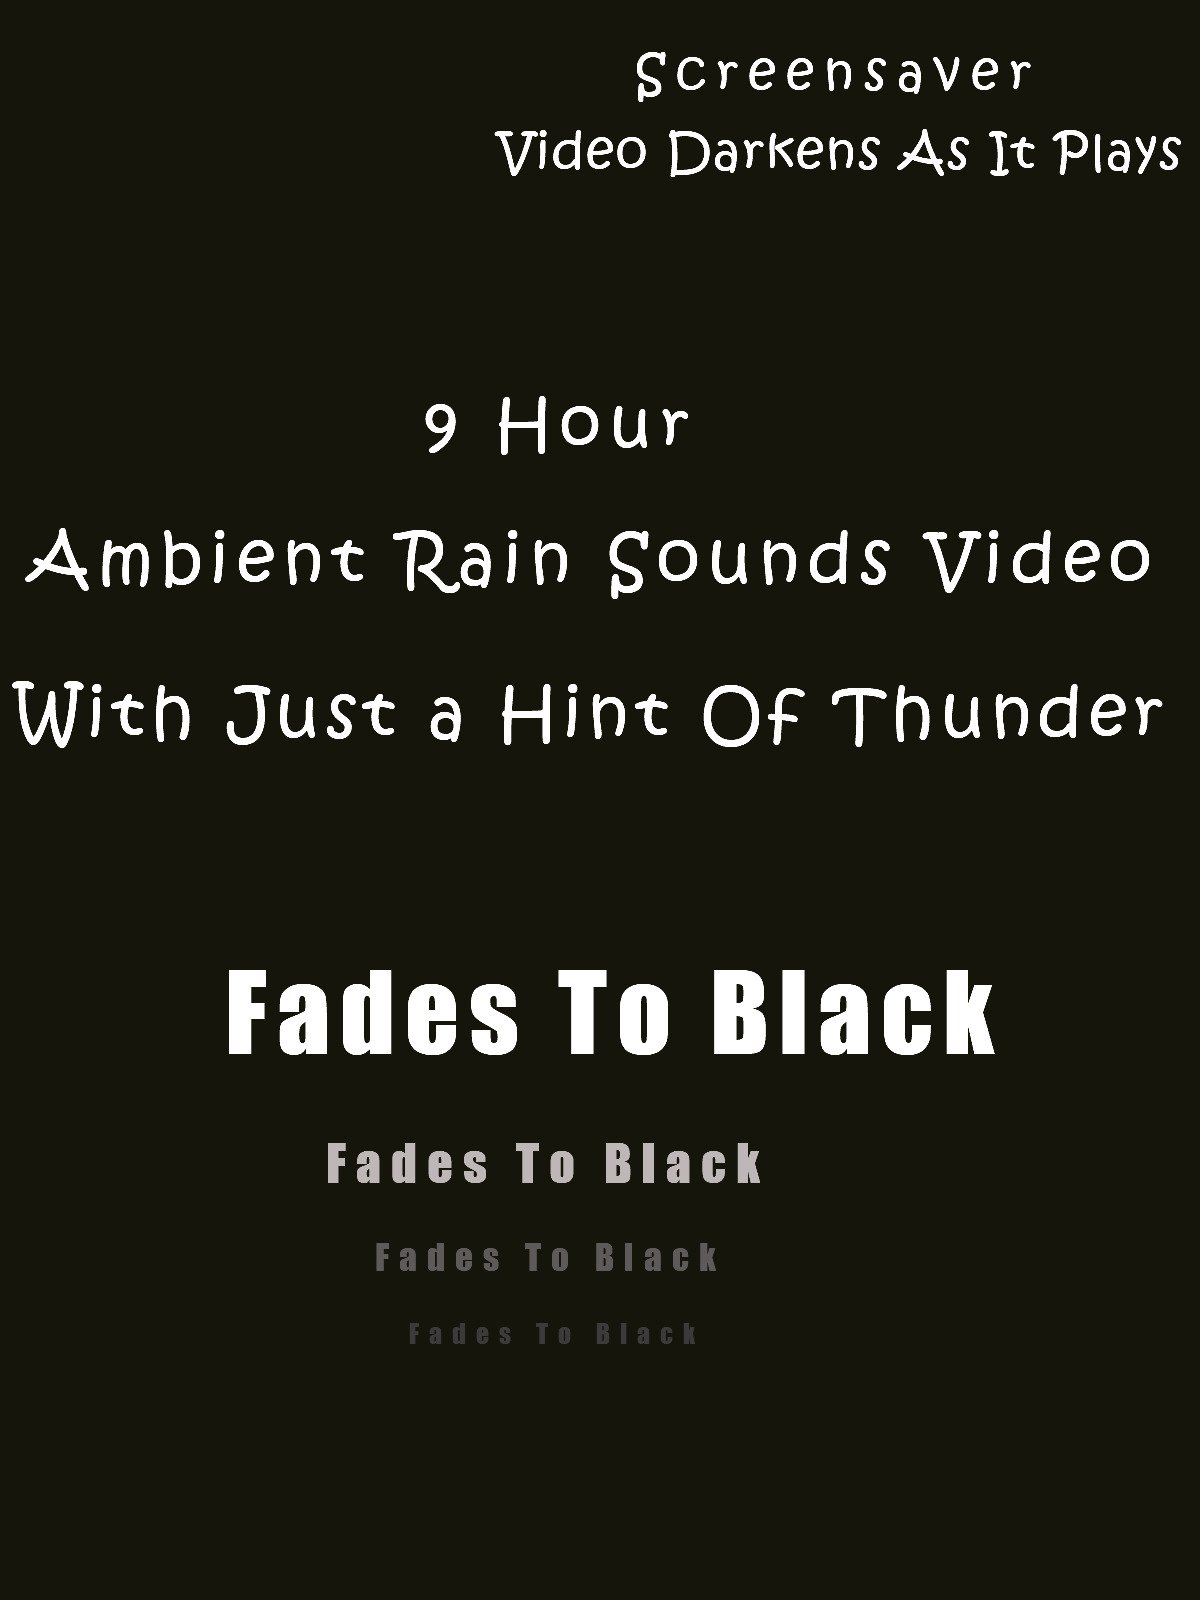 9 Hour Ambient Rain Sounds Video With Just a Hint Of Thunder Fades To Black on Amazon Prime Instant Video UK